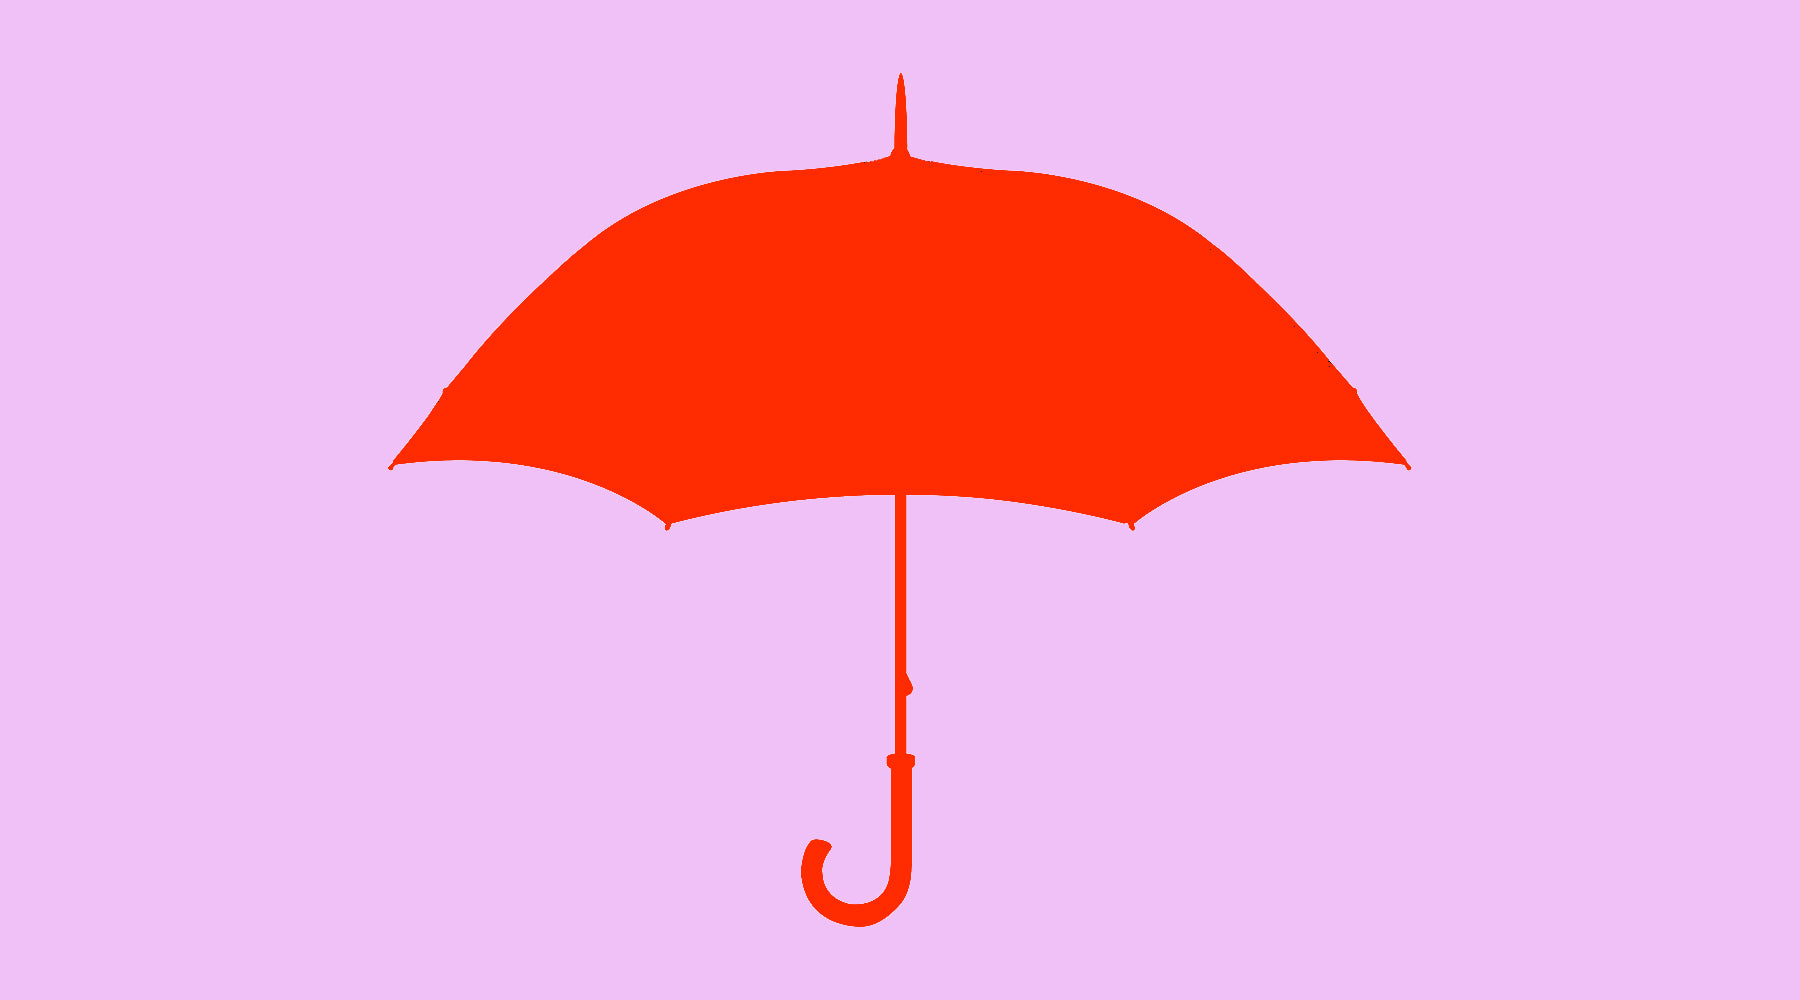 Red Umbrella on Lavender Background | Nikki Darling Australia